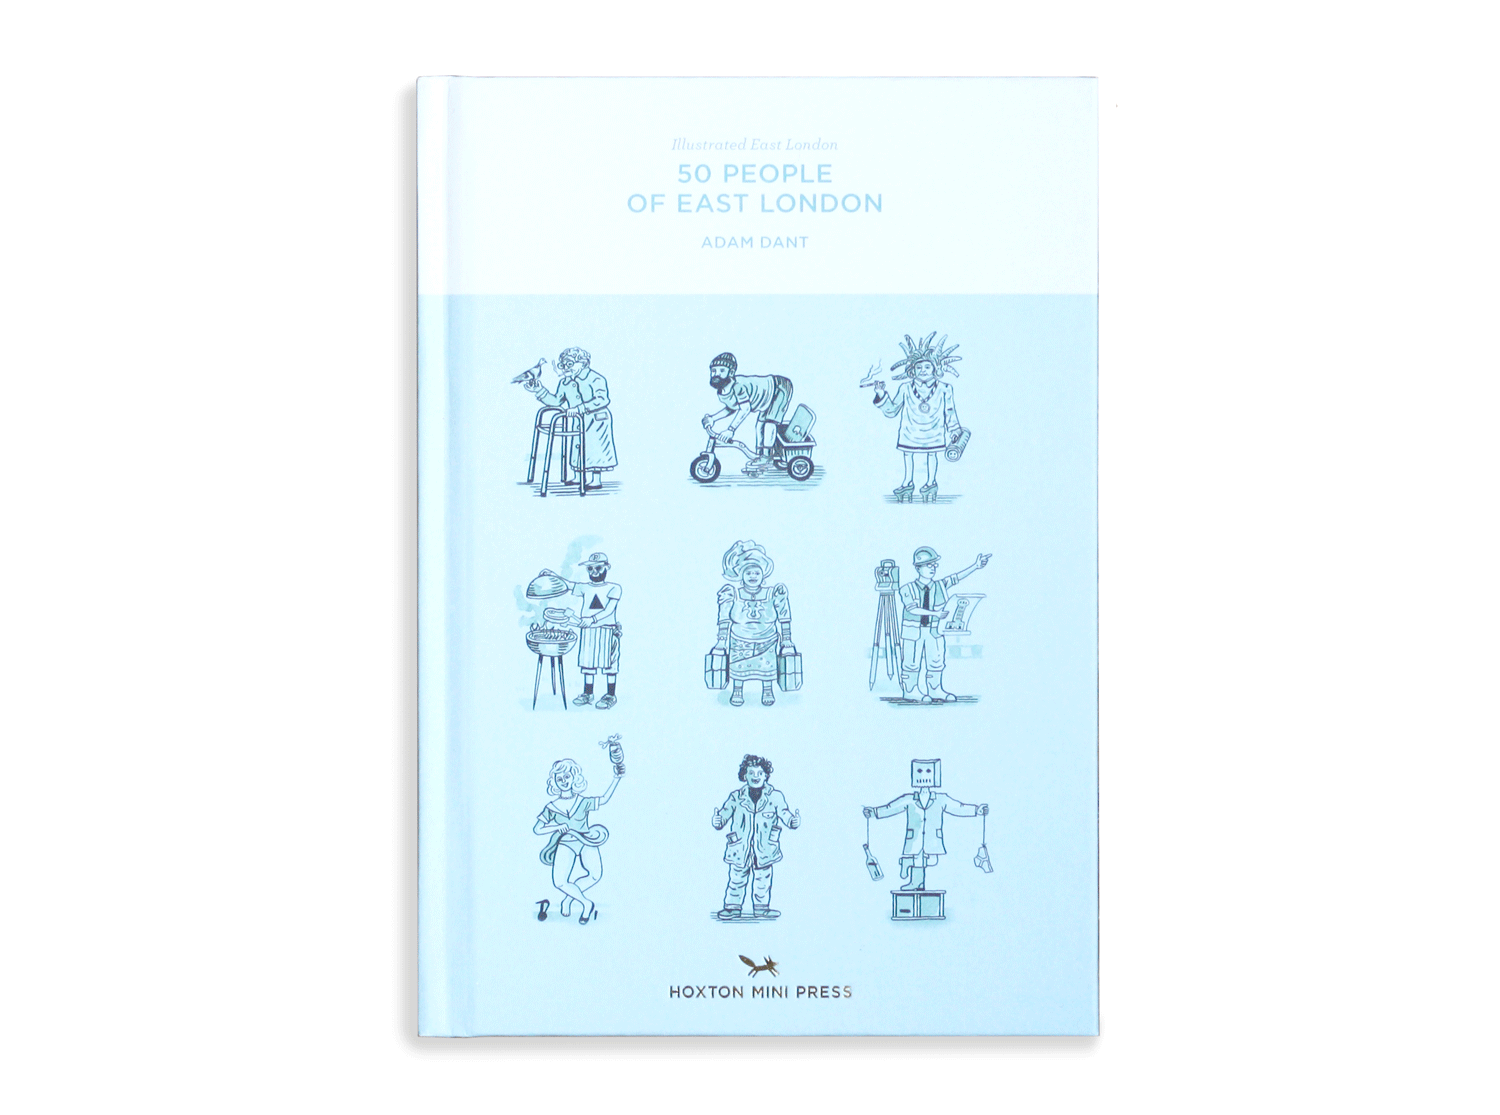 Hoxton Mini Press 50 People of East London Illustrated Book